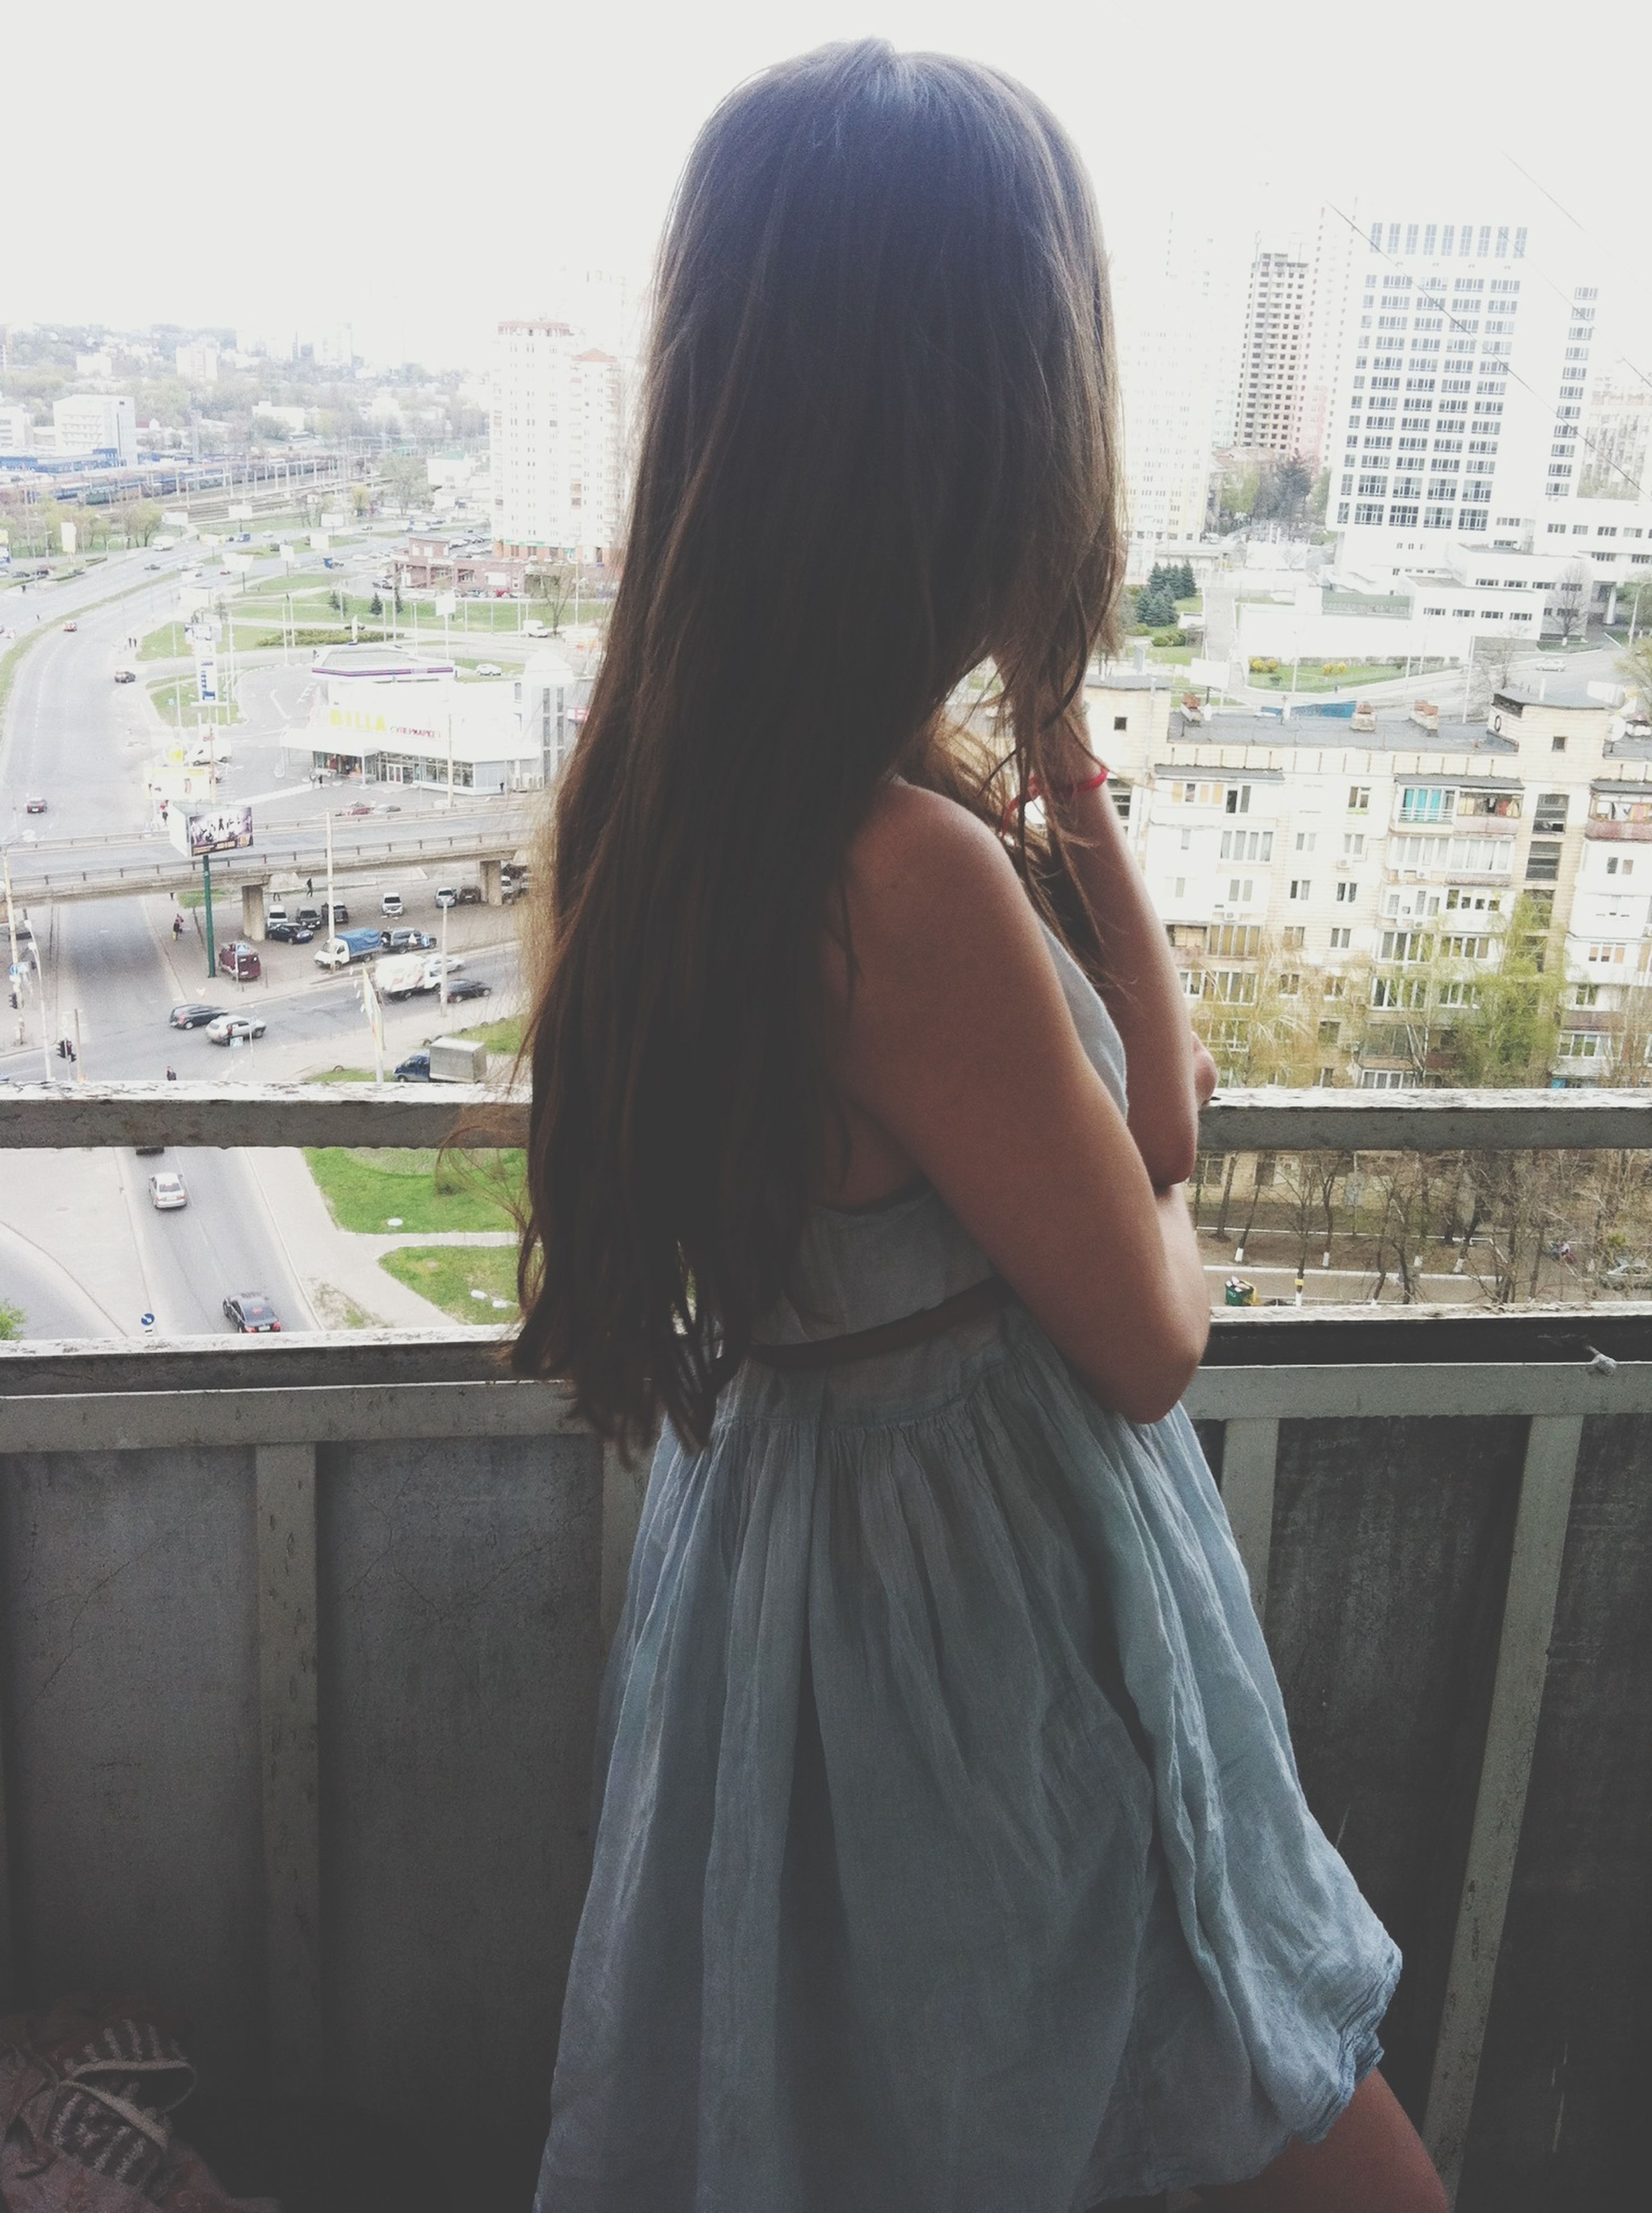 rear view, lifestyles, waist up, architecture, building exterior, city, built structure, leisure activity, long hair, casual clothing, cityscape, person, sitting, young women, three quarter length, young adult, standing, focus on foreground